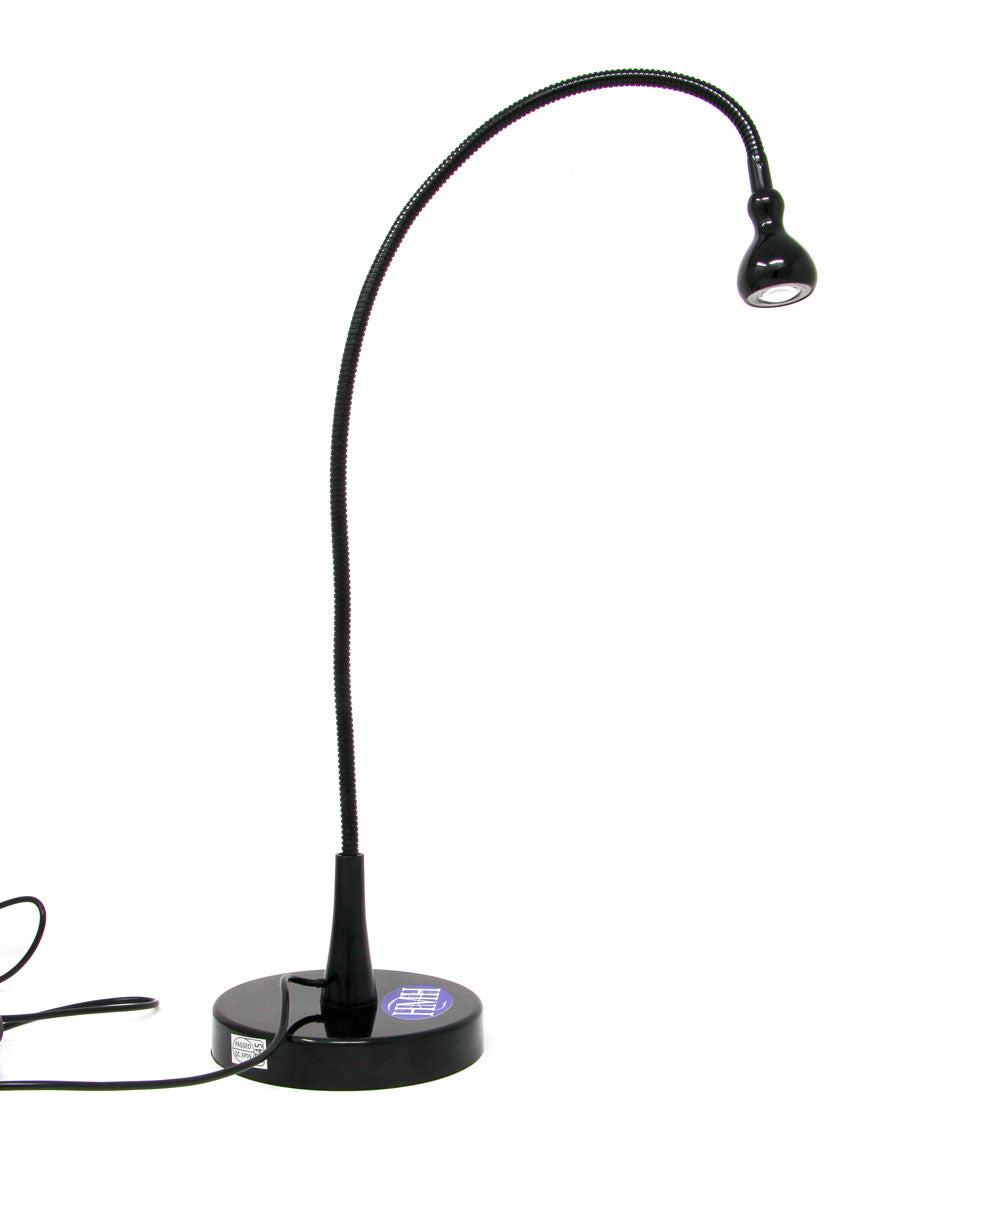 HMH Gooseneck Tying Light - Fly Tying Light